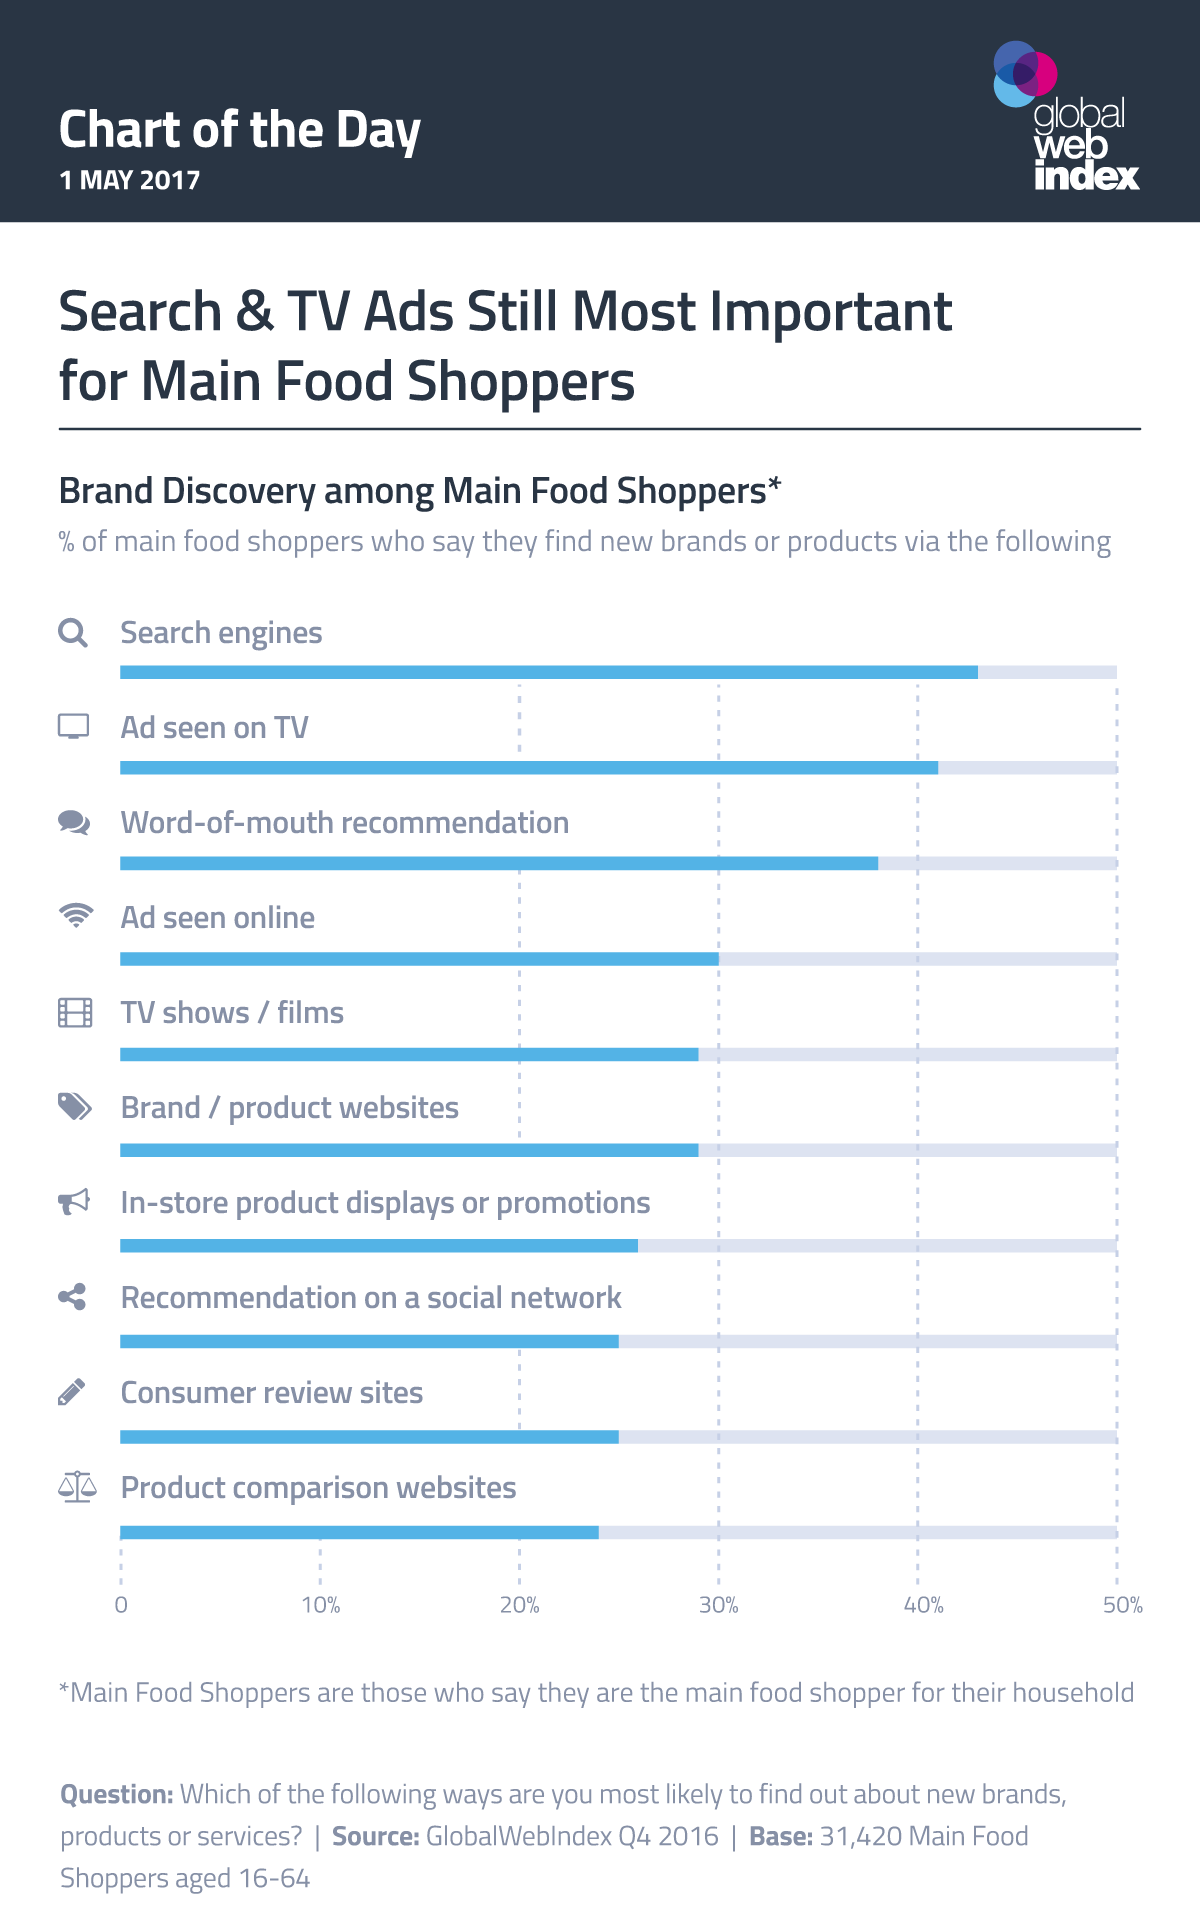 Search & TV Ads Still Most Important for Main Food Shoppers